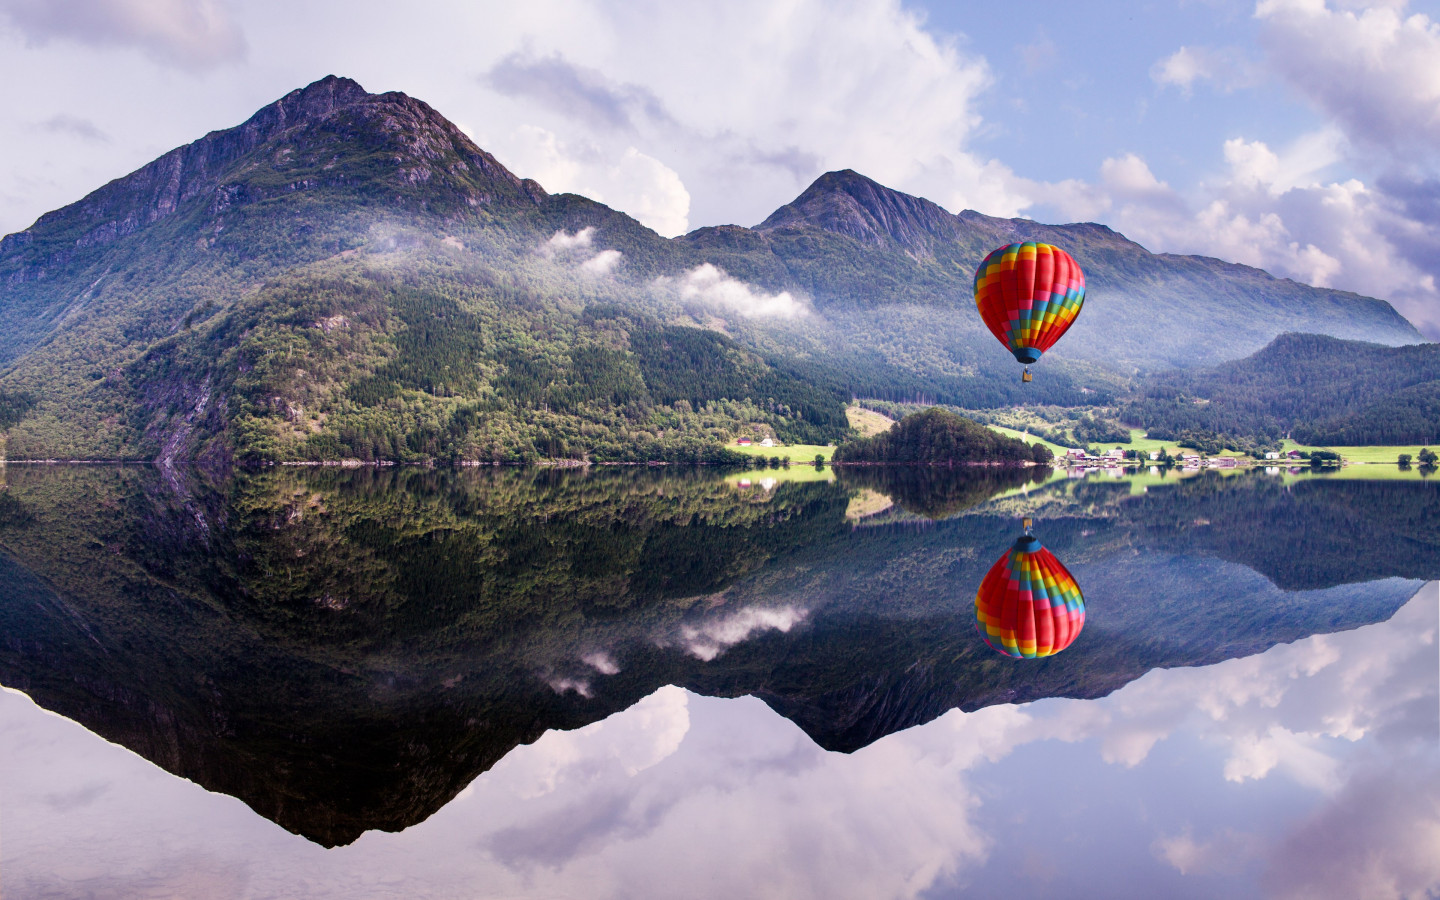 Fly in a hot air balloon wallpaper 1440x900